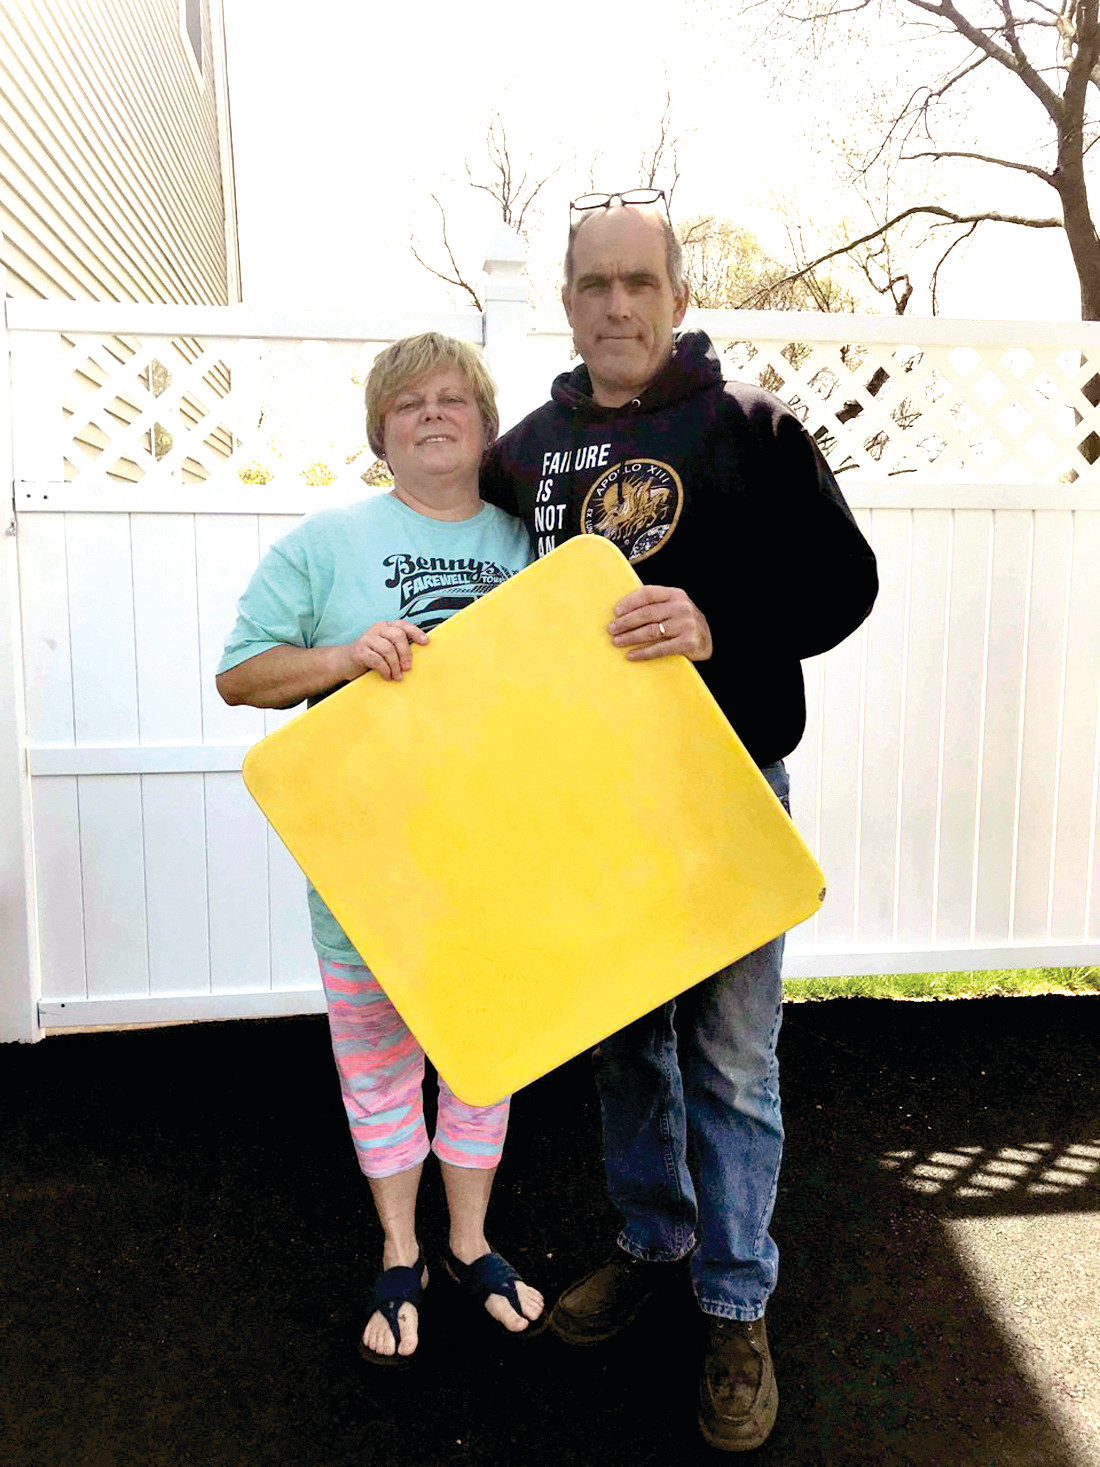 NOW: Norm and Jodie Tellier hold the rescued tabletop containing their love note